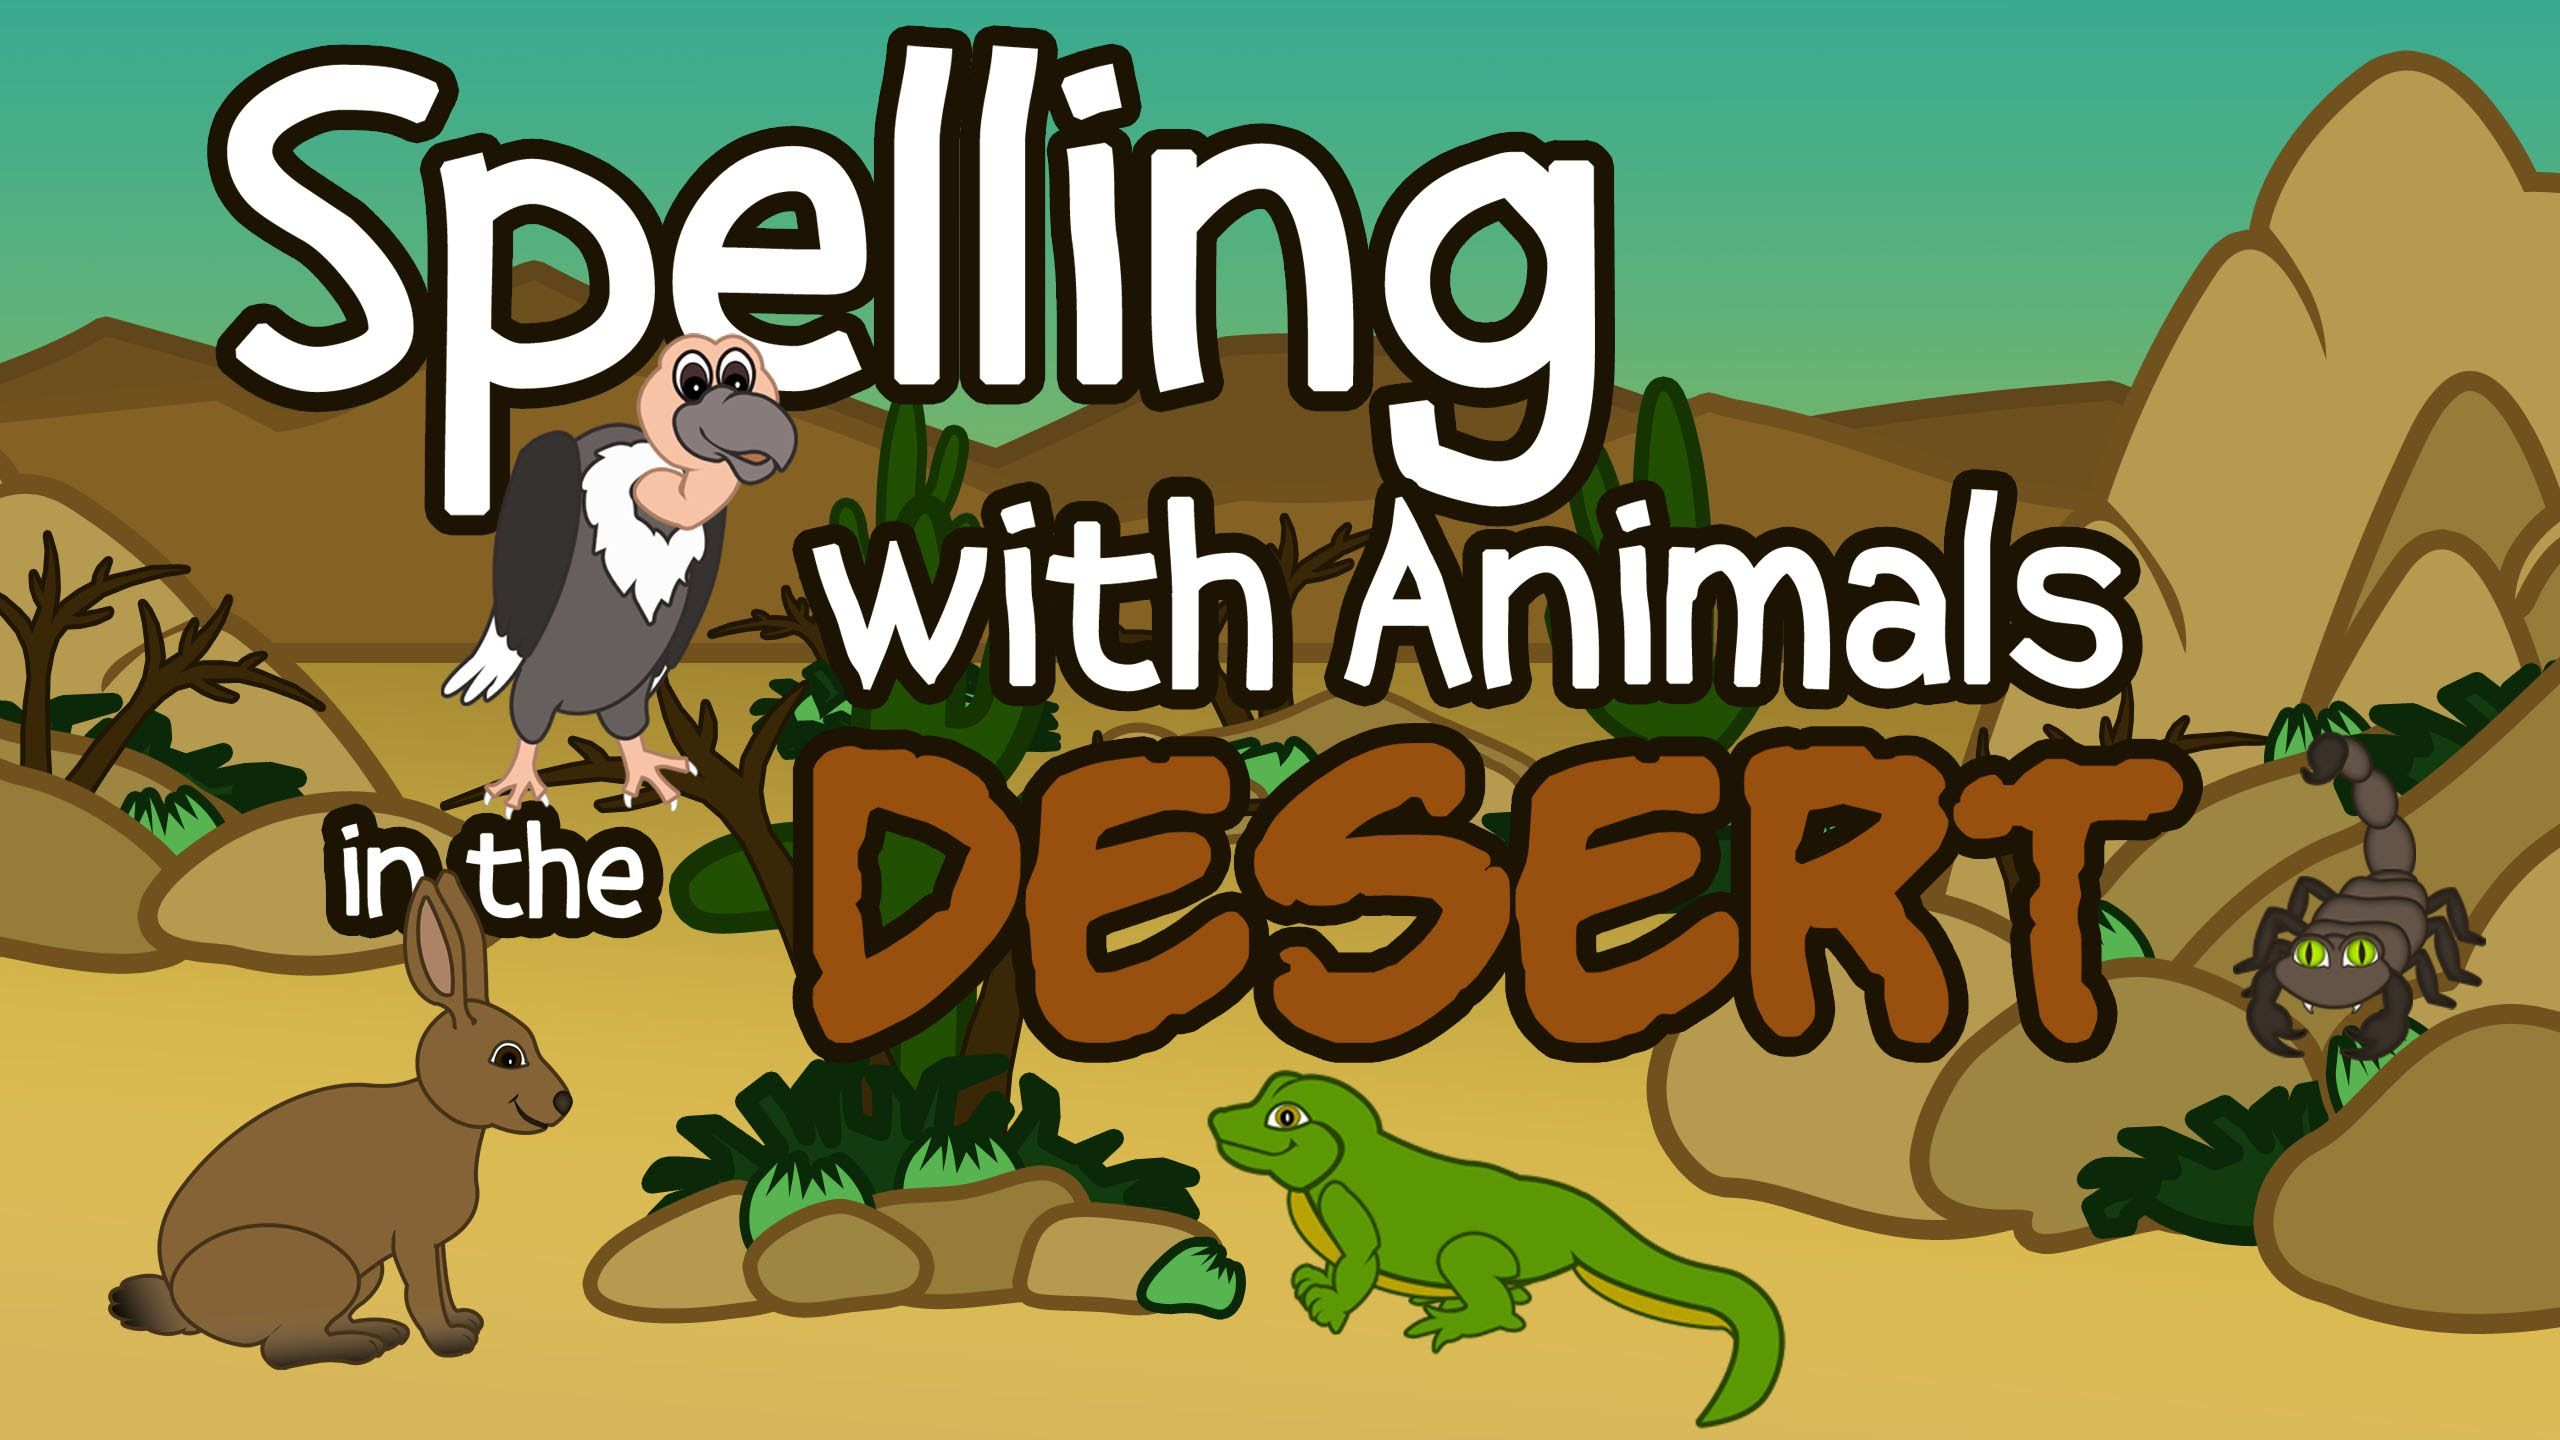 Desert Animals Fun Spelling Songs For Children Kids Spelling Learning Videos Desert Animals Spelling For Kids Animals For Kids